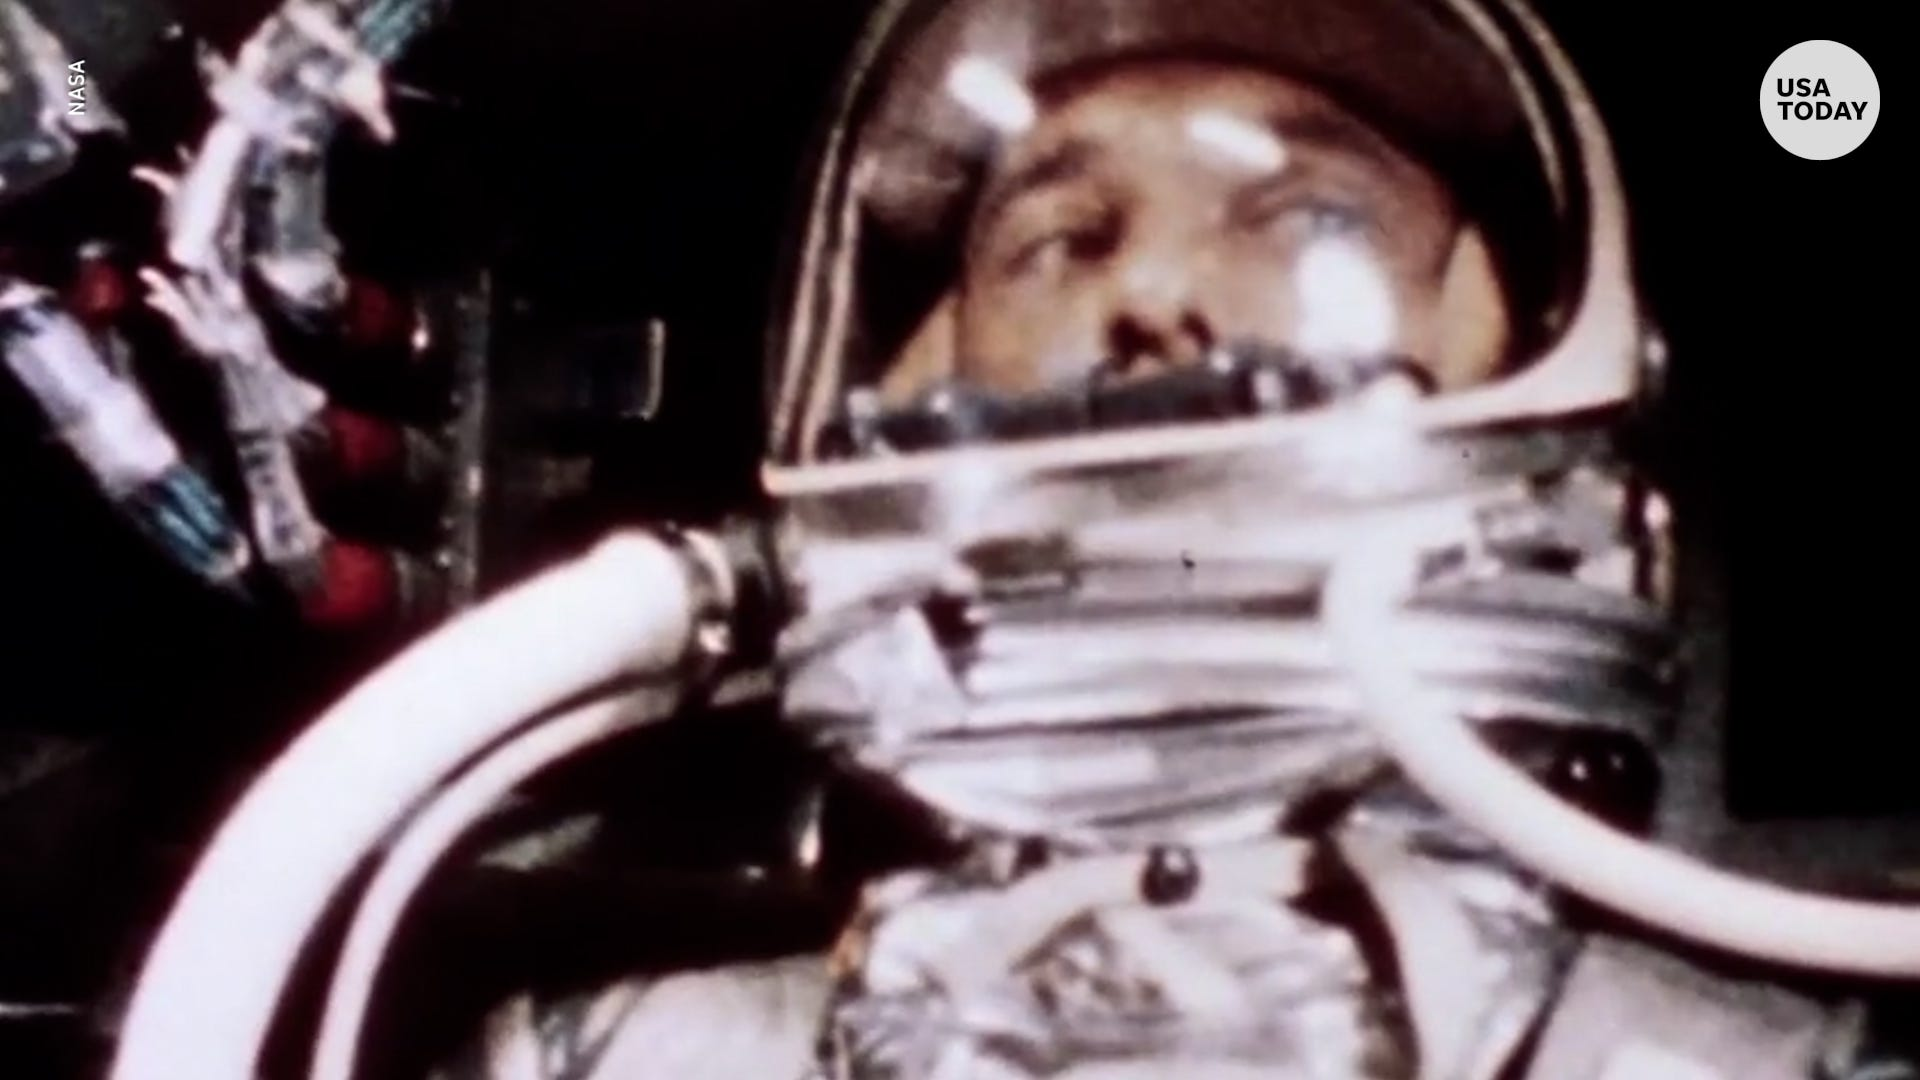 First American in space, Alan Shepard, used astronaut diaper before liftoff in 1961